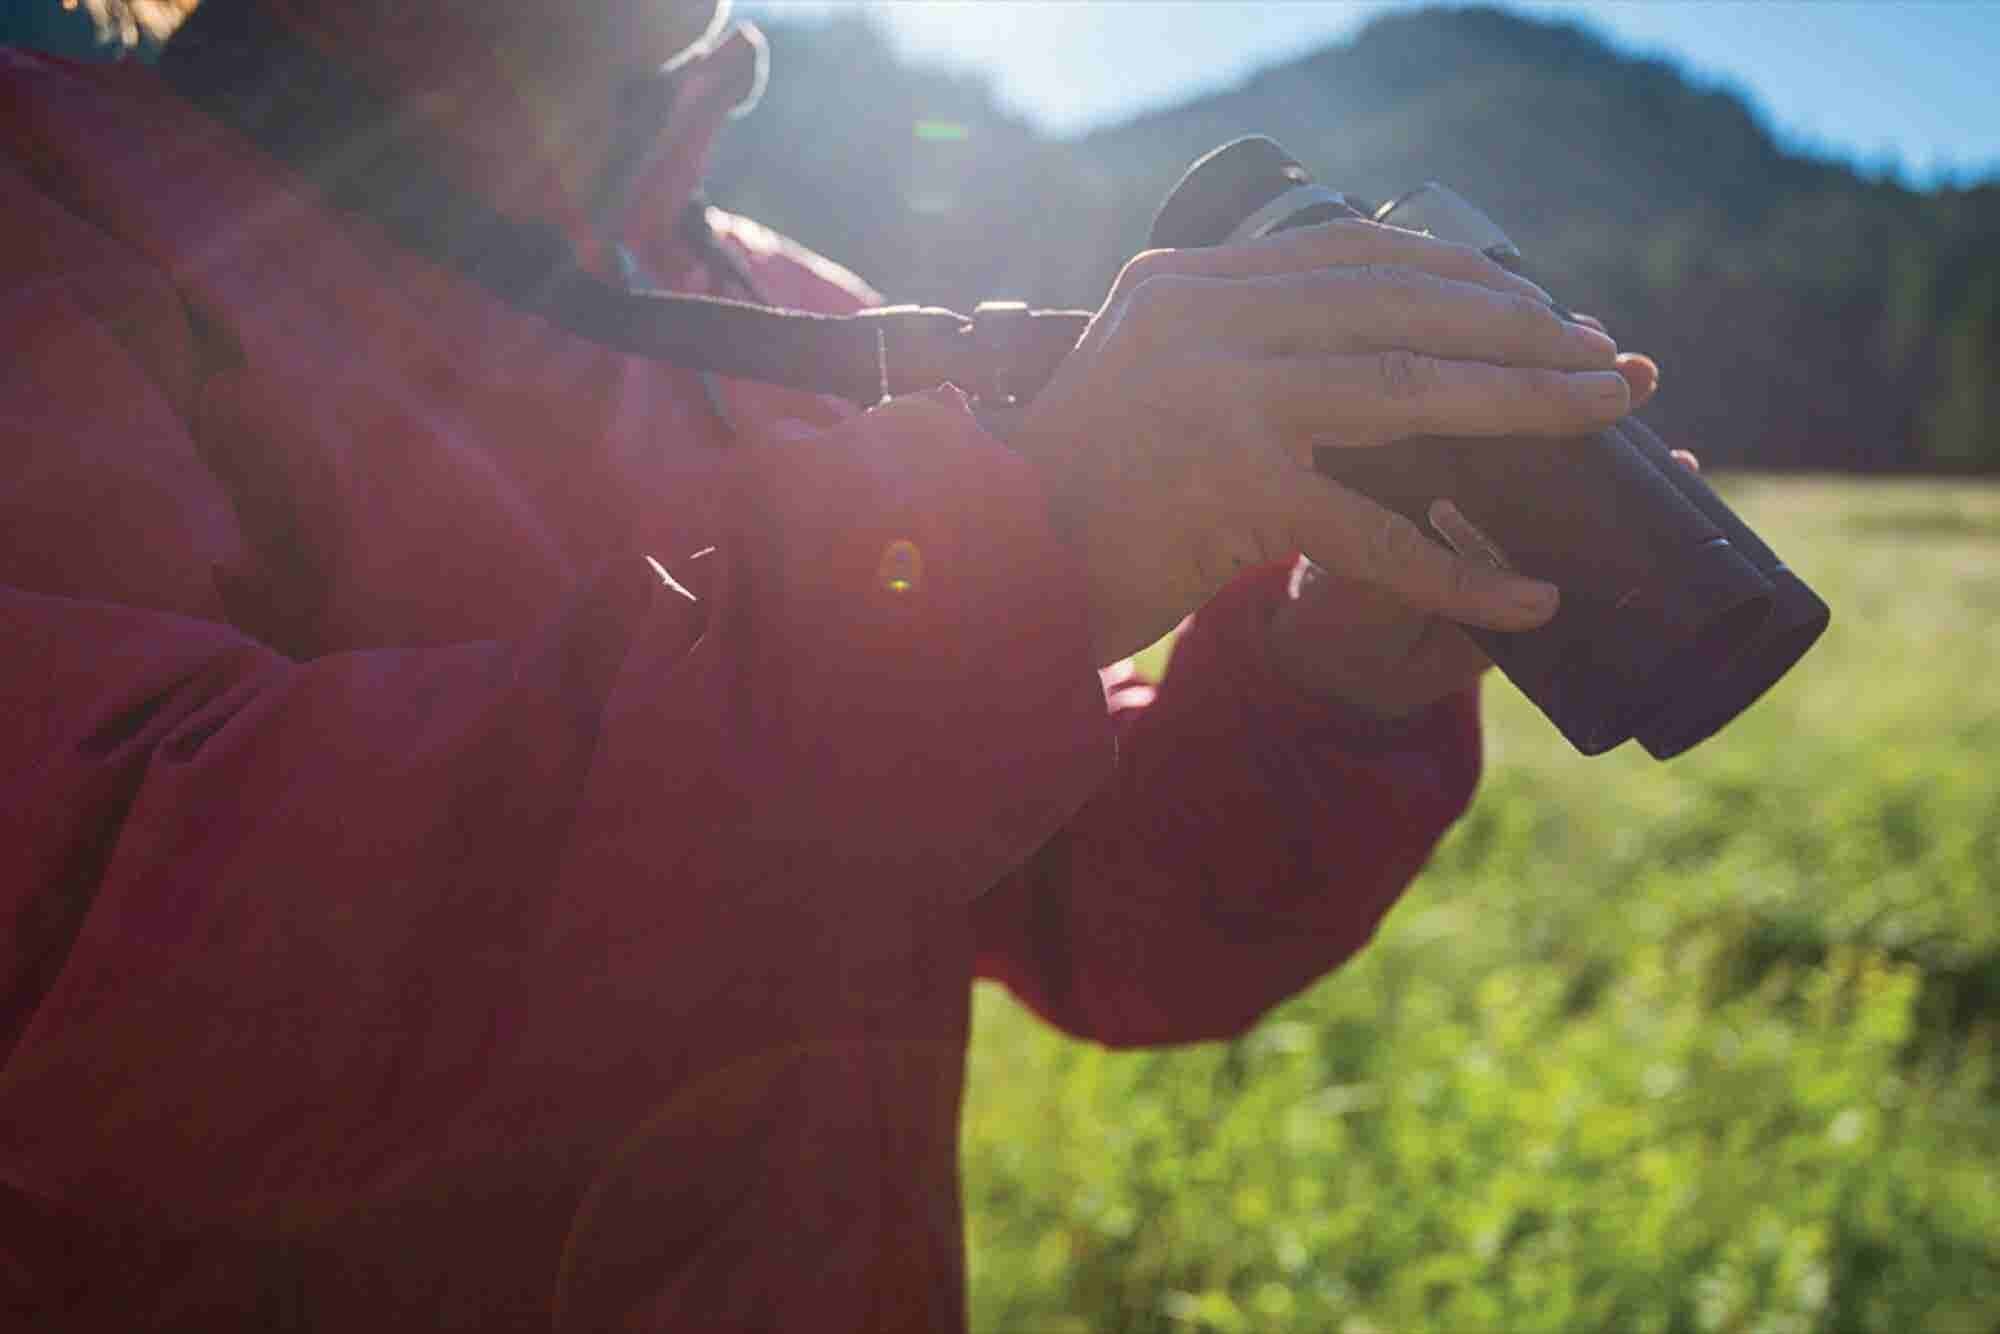 Meet the Entrepreneurs Who Set Their Sights on Bringing Quality Binoculars to the U.S.